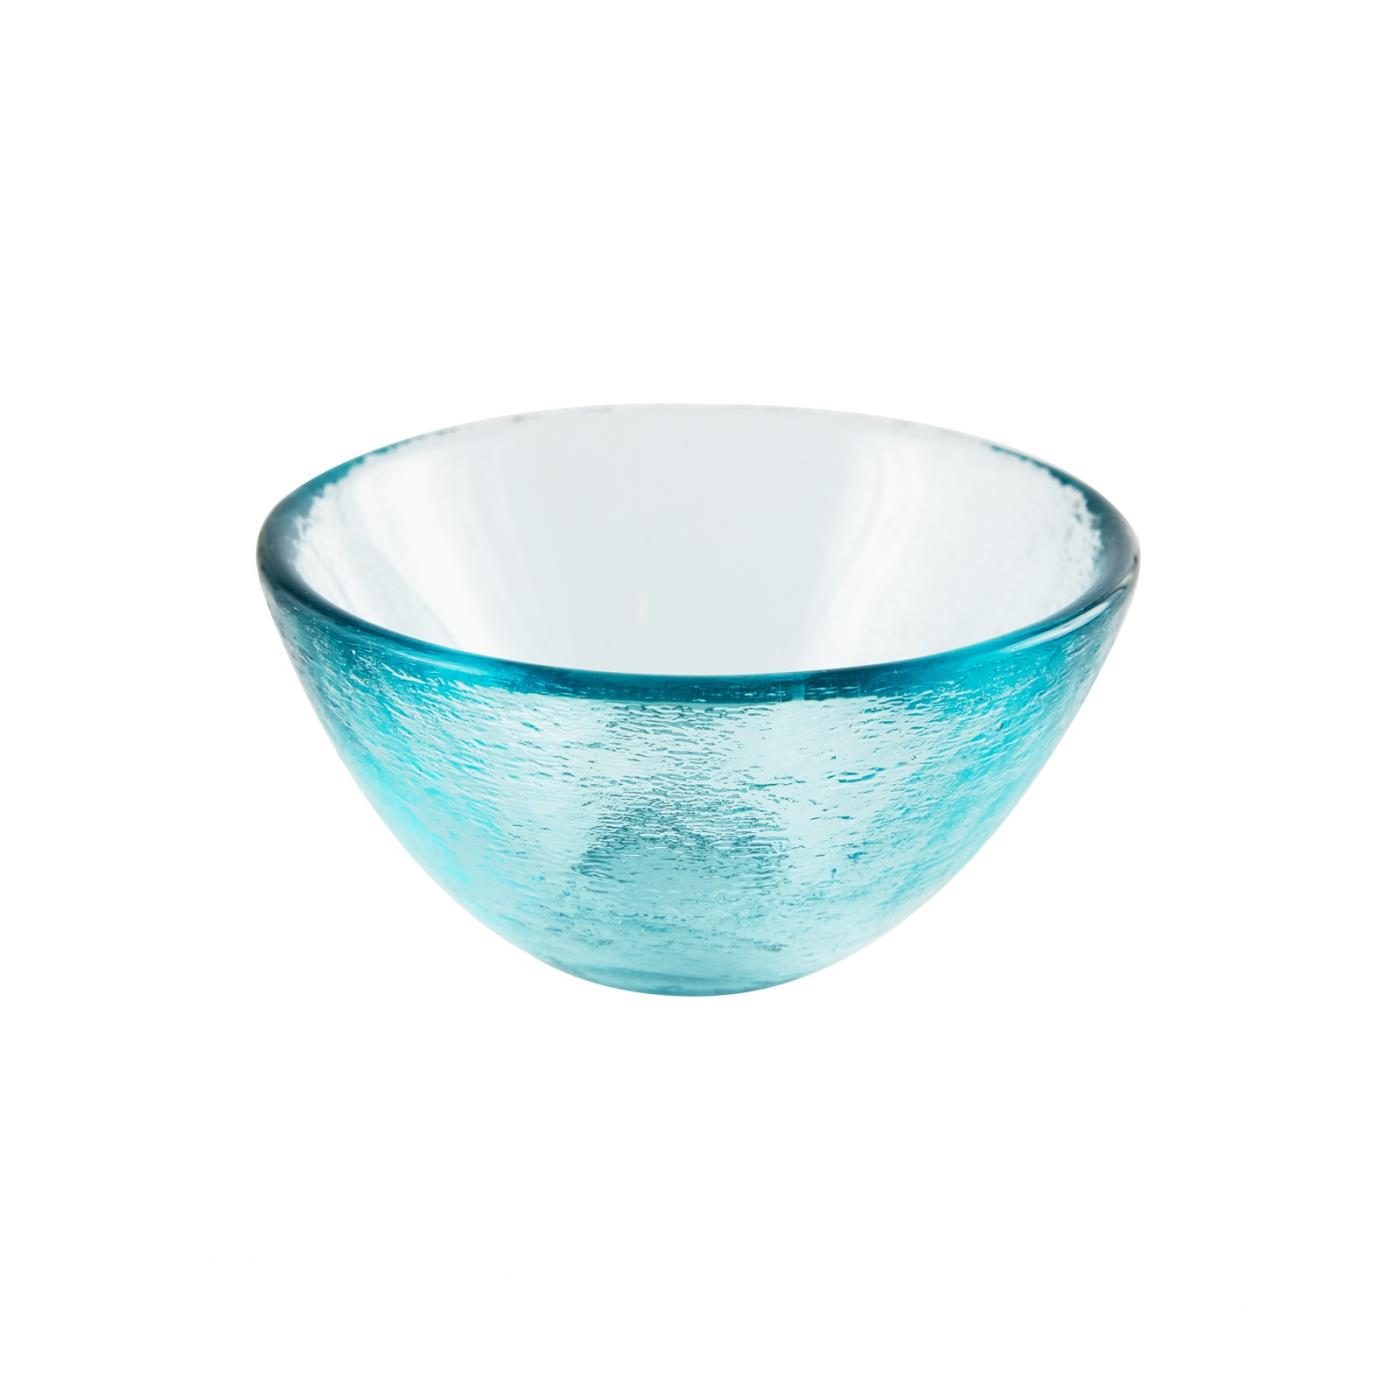 "Glass Dipping Bowl 3.25"" - Aqua"